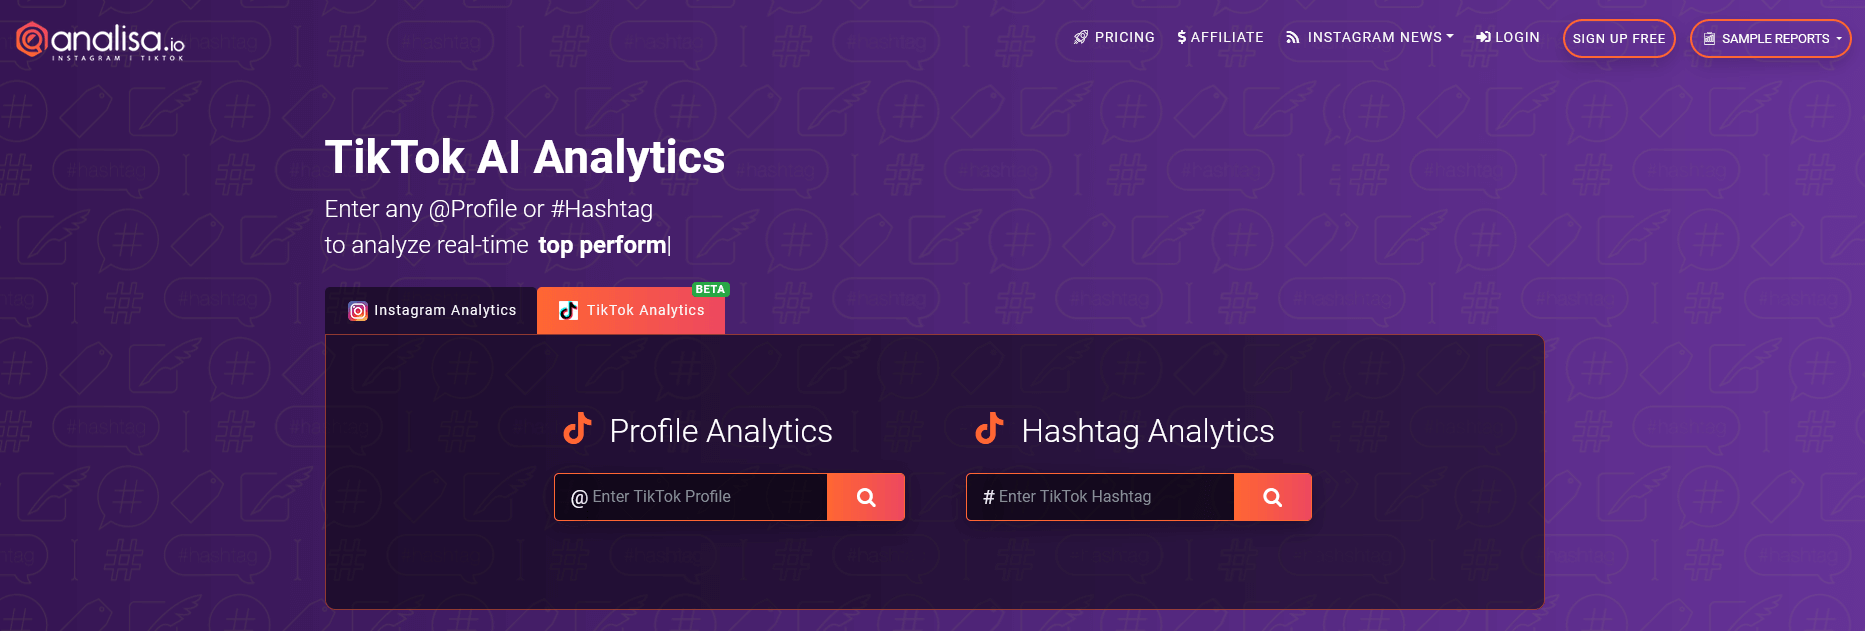 Analisa.io - Analyze TikTok Profile & Followers